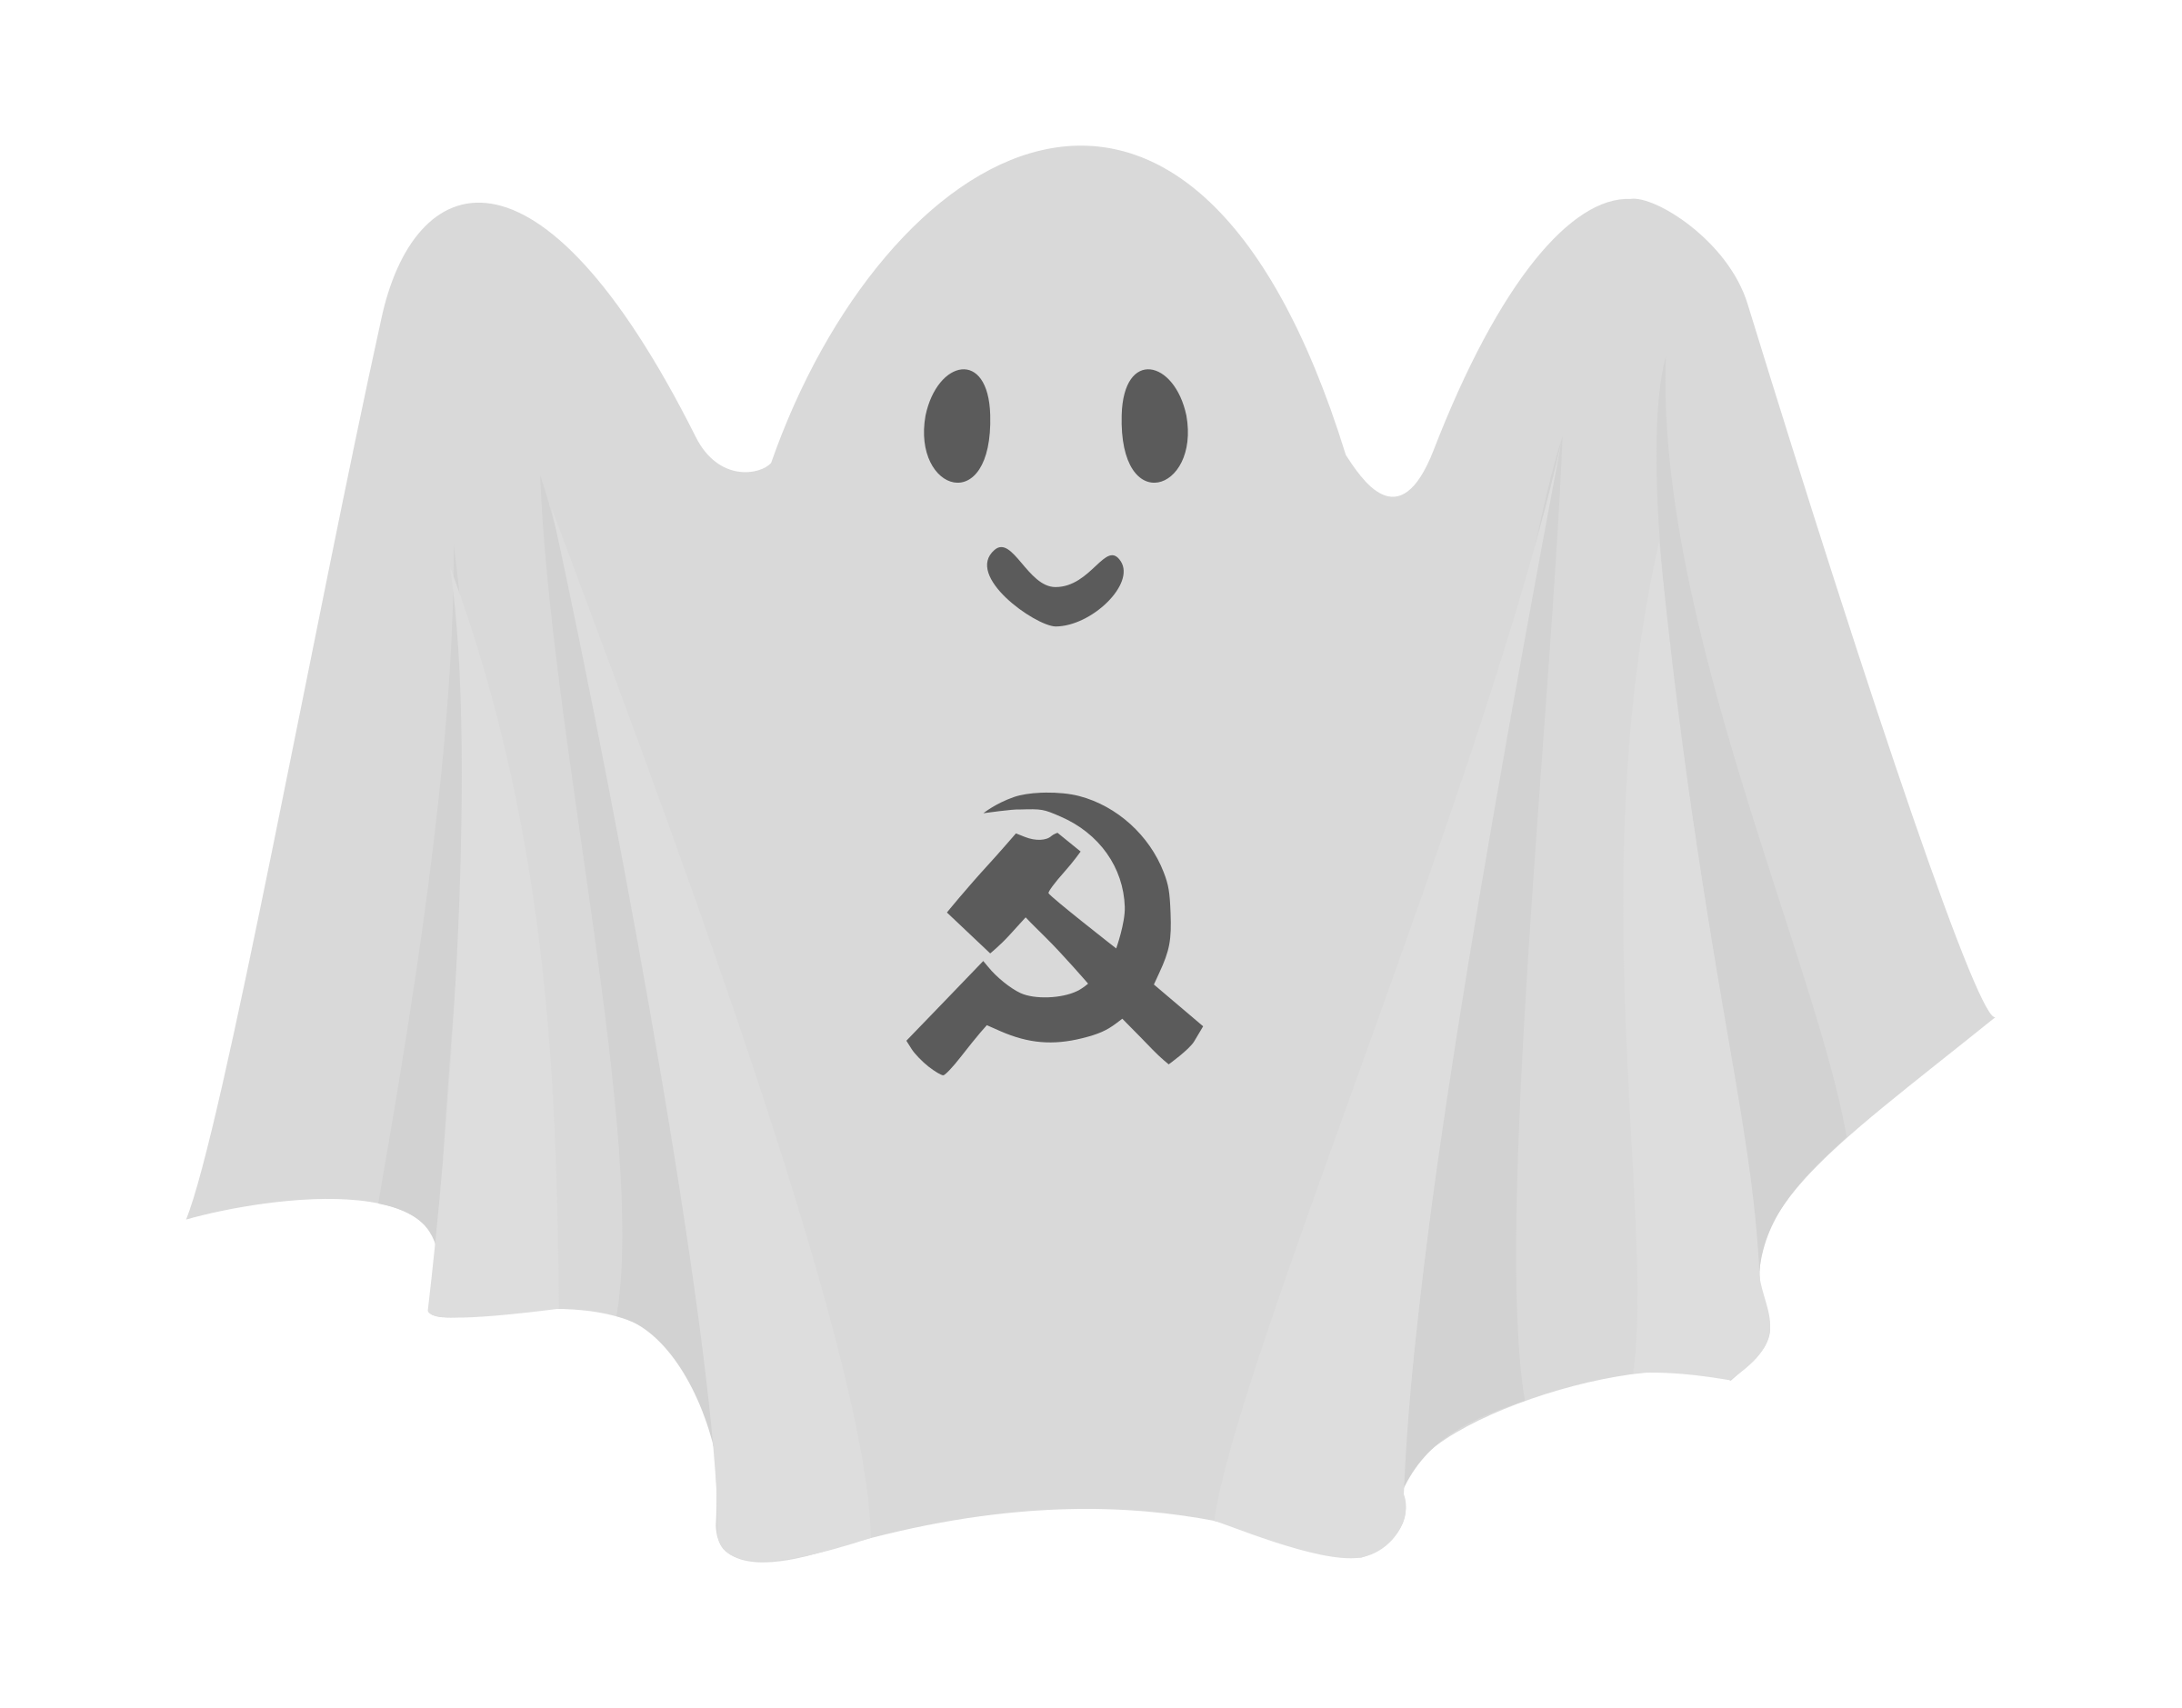 Ghost of Communism by worker